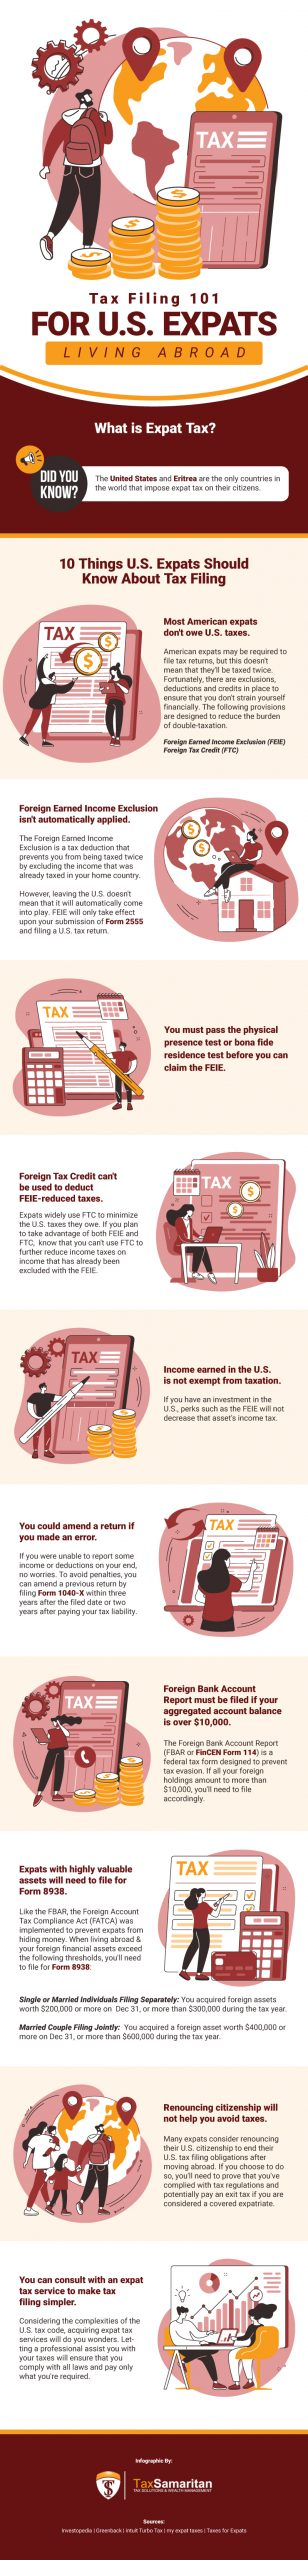 tax filing 101 for us expats living abroad infographic